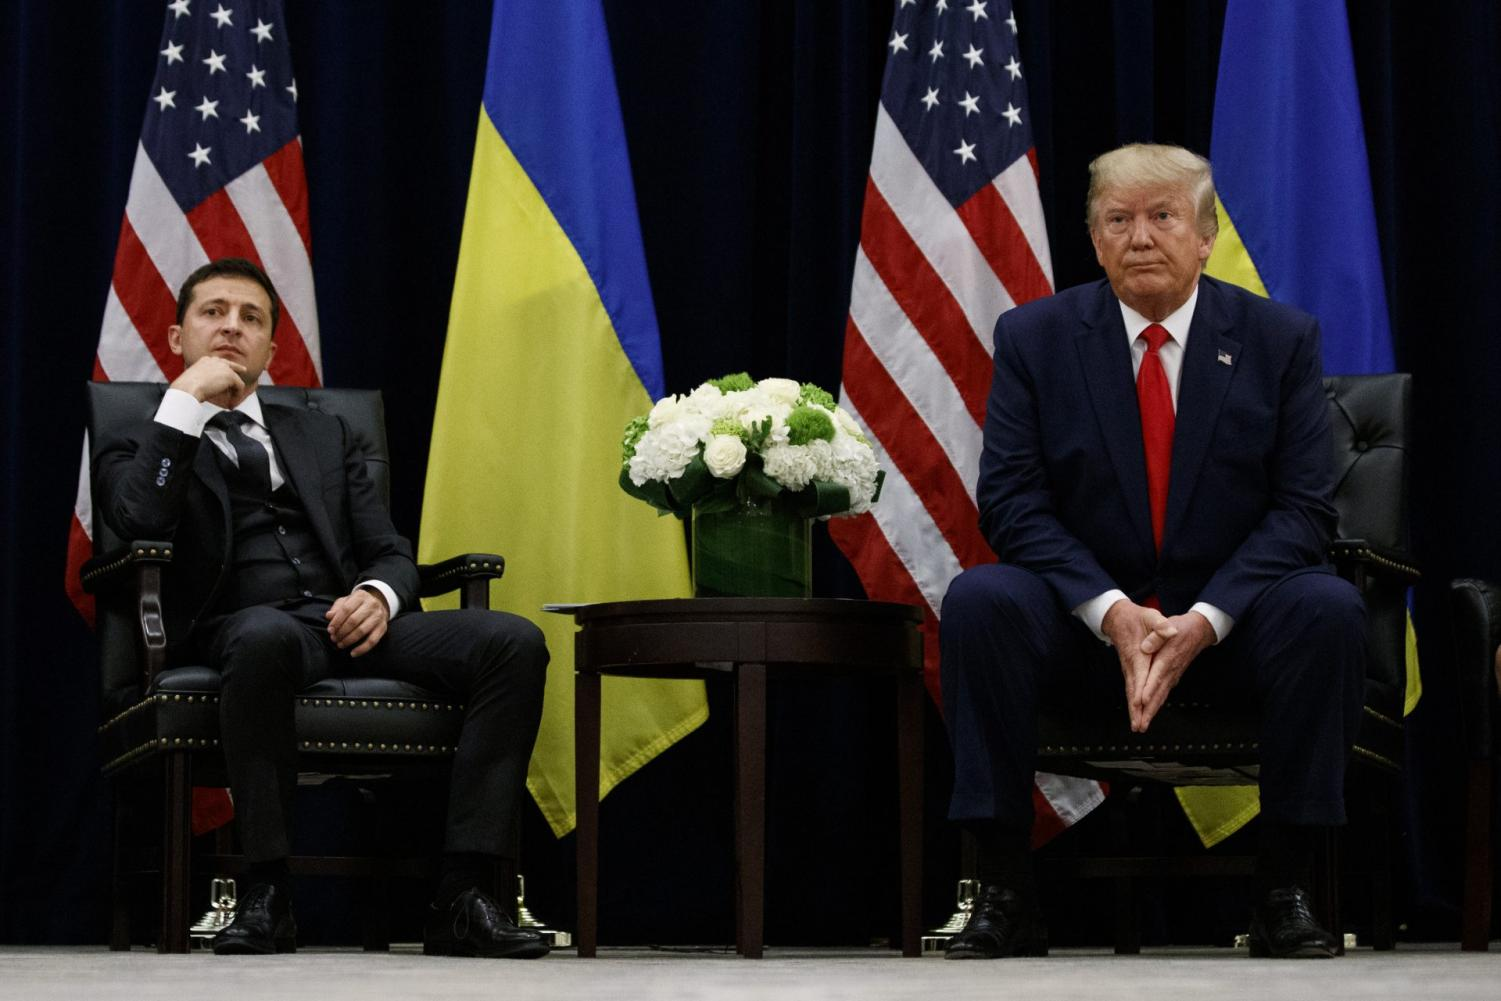 President Donald Trump meets with Ukrainian President Volodymyr Zelenskiy during the U.N. General Assembly, Sept. 25, 2019, in New York.